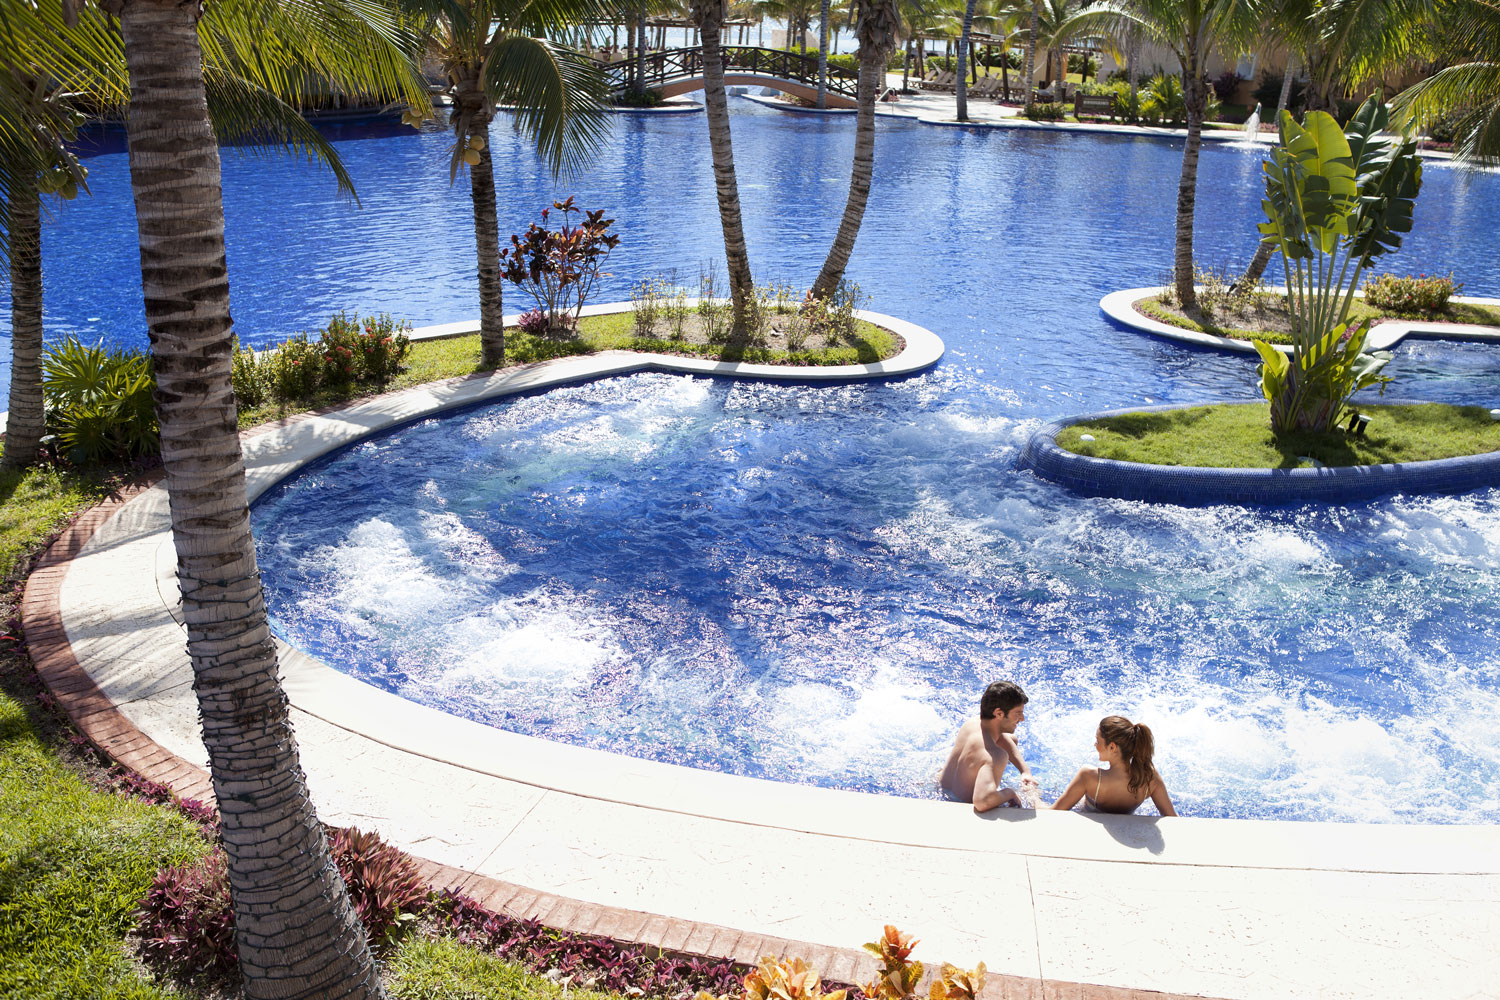 Barceló Maya Grand Resort pool at hotel